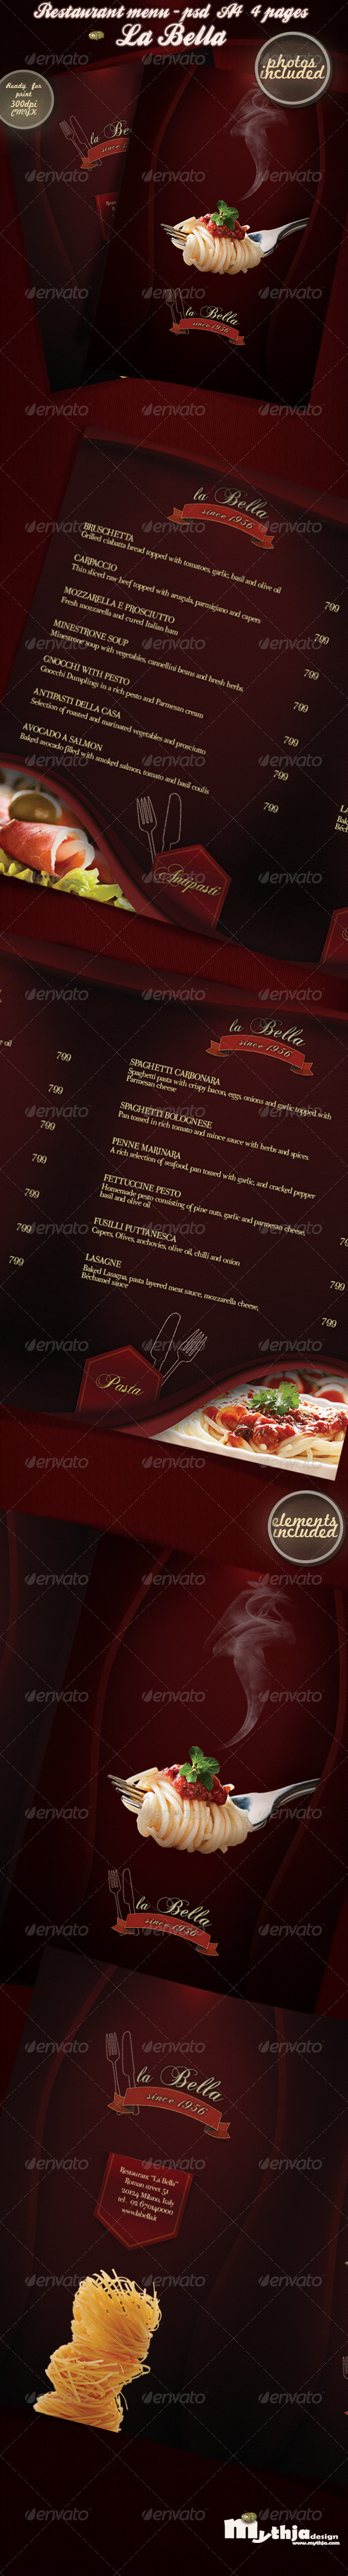 La Bella - Restaurant Menu - Photos Included - Food Menus Print Templates